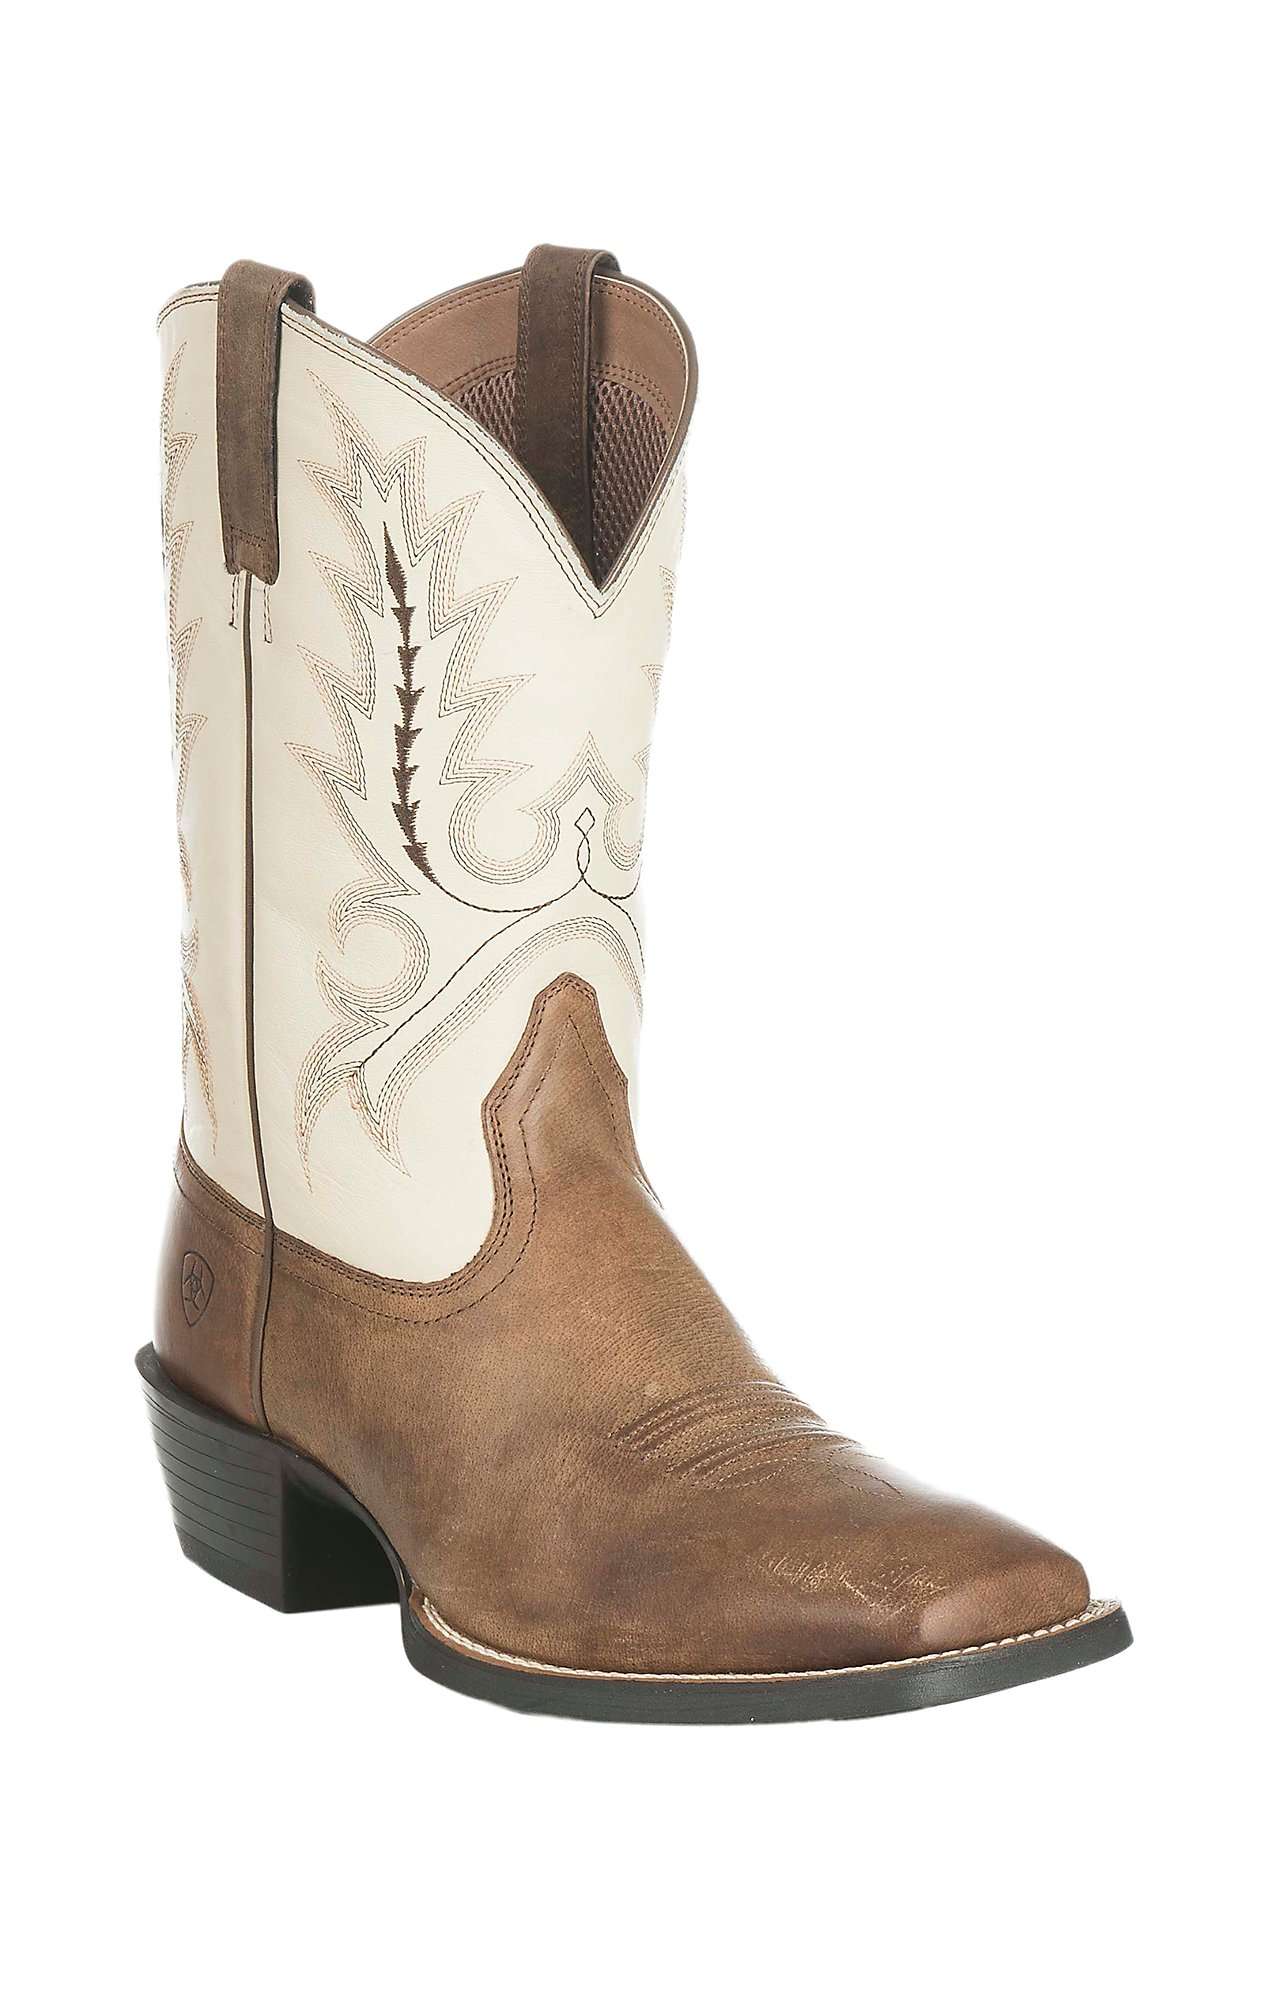 Western Men's Square Toe Boots | Cavender's